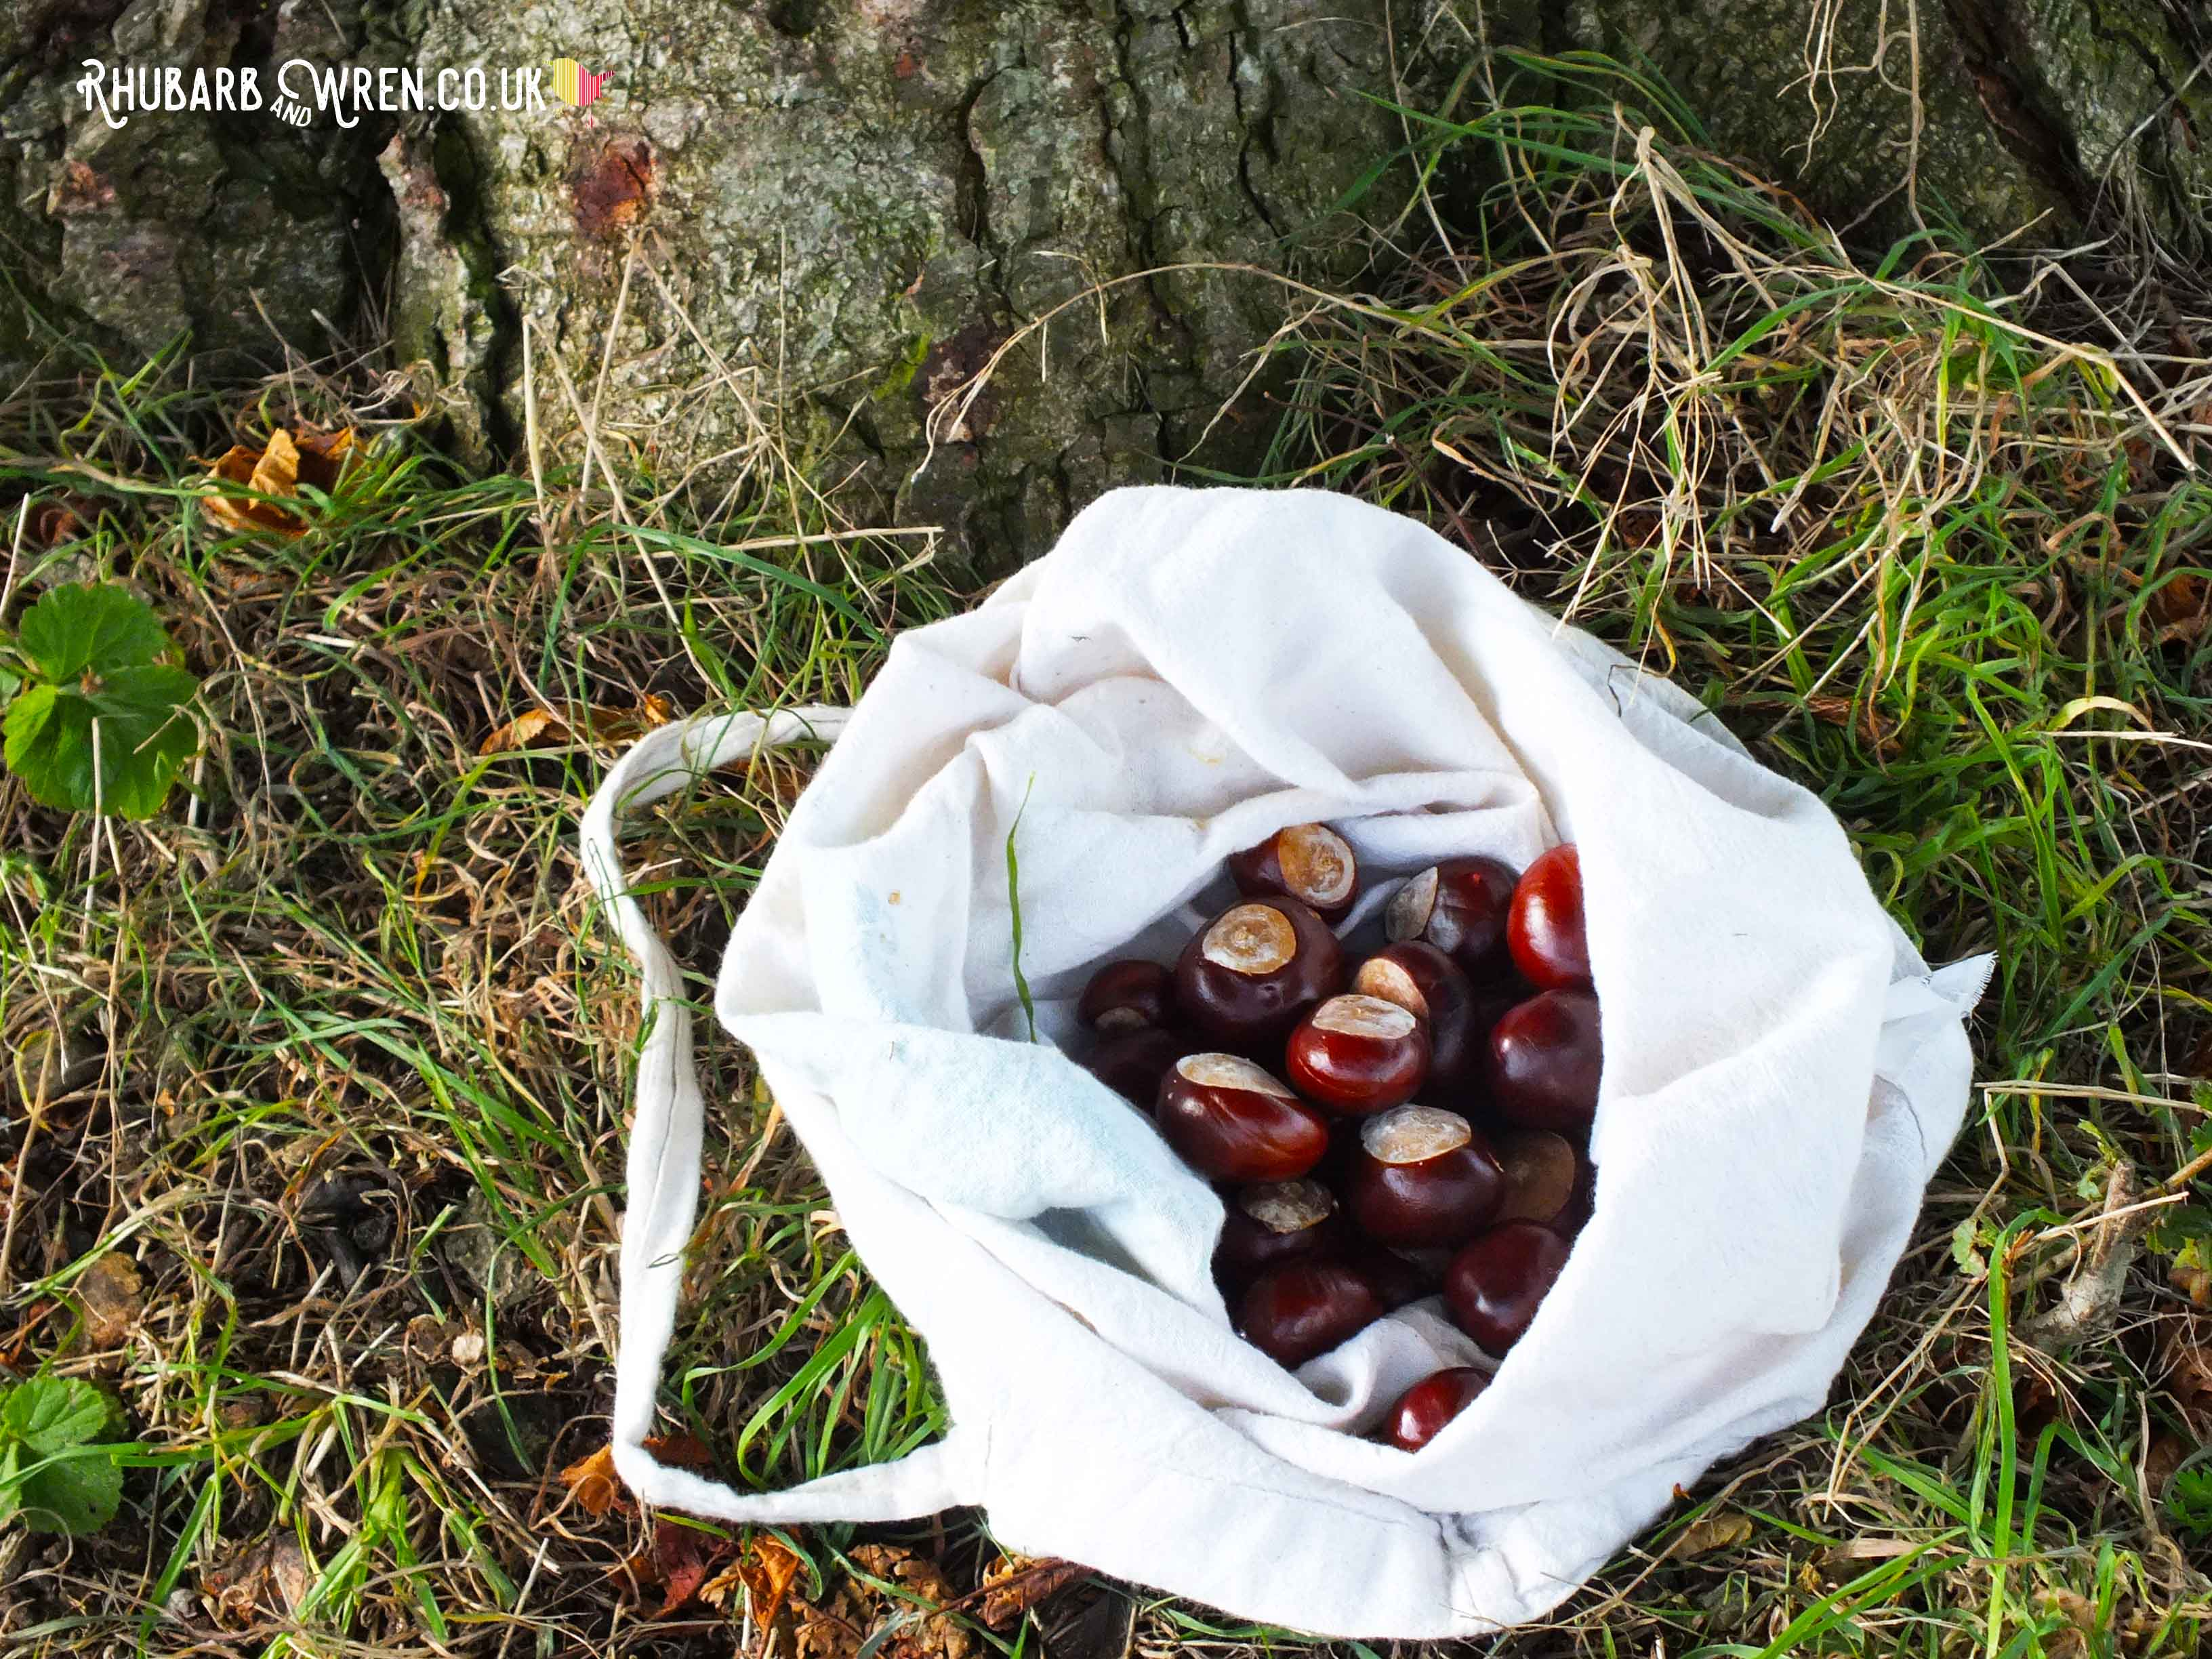 Canvas bag full of conkers lying at base of tree